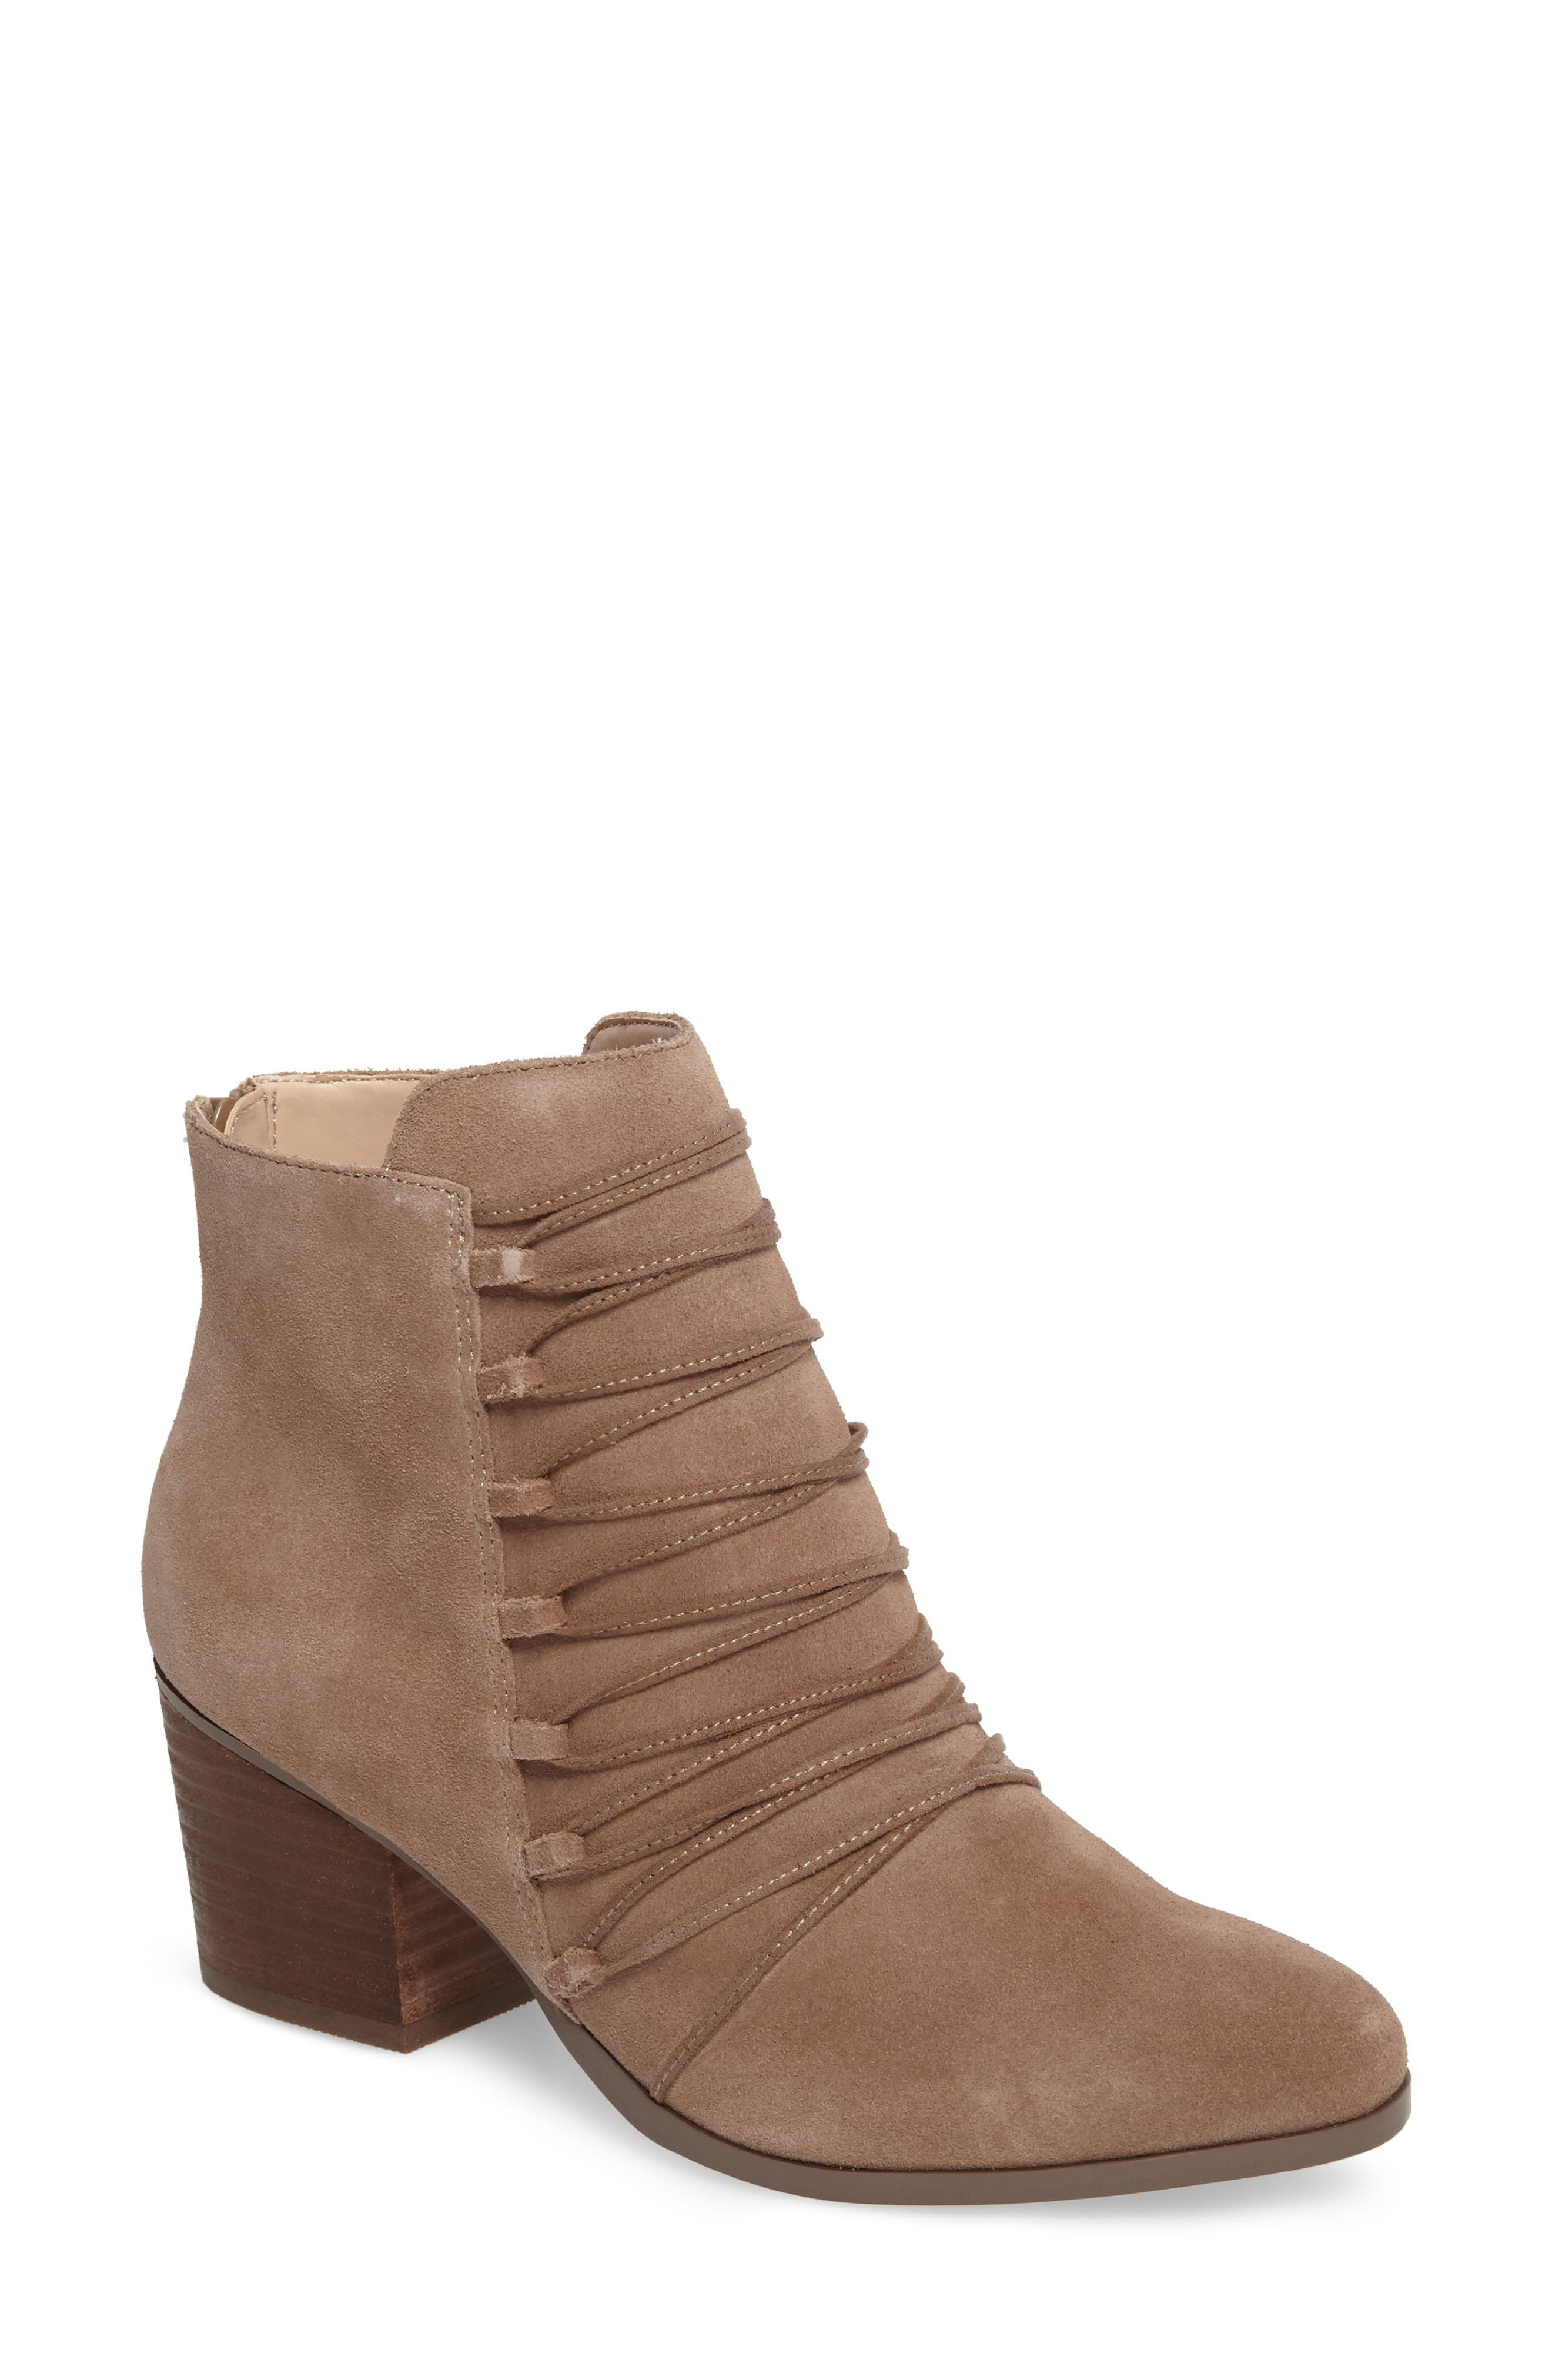 Alternate Image 1 Selected - Sole Society Bellevue Bootie (Women)